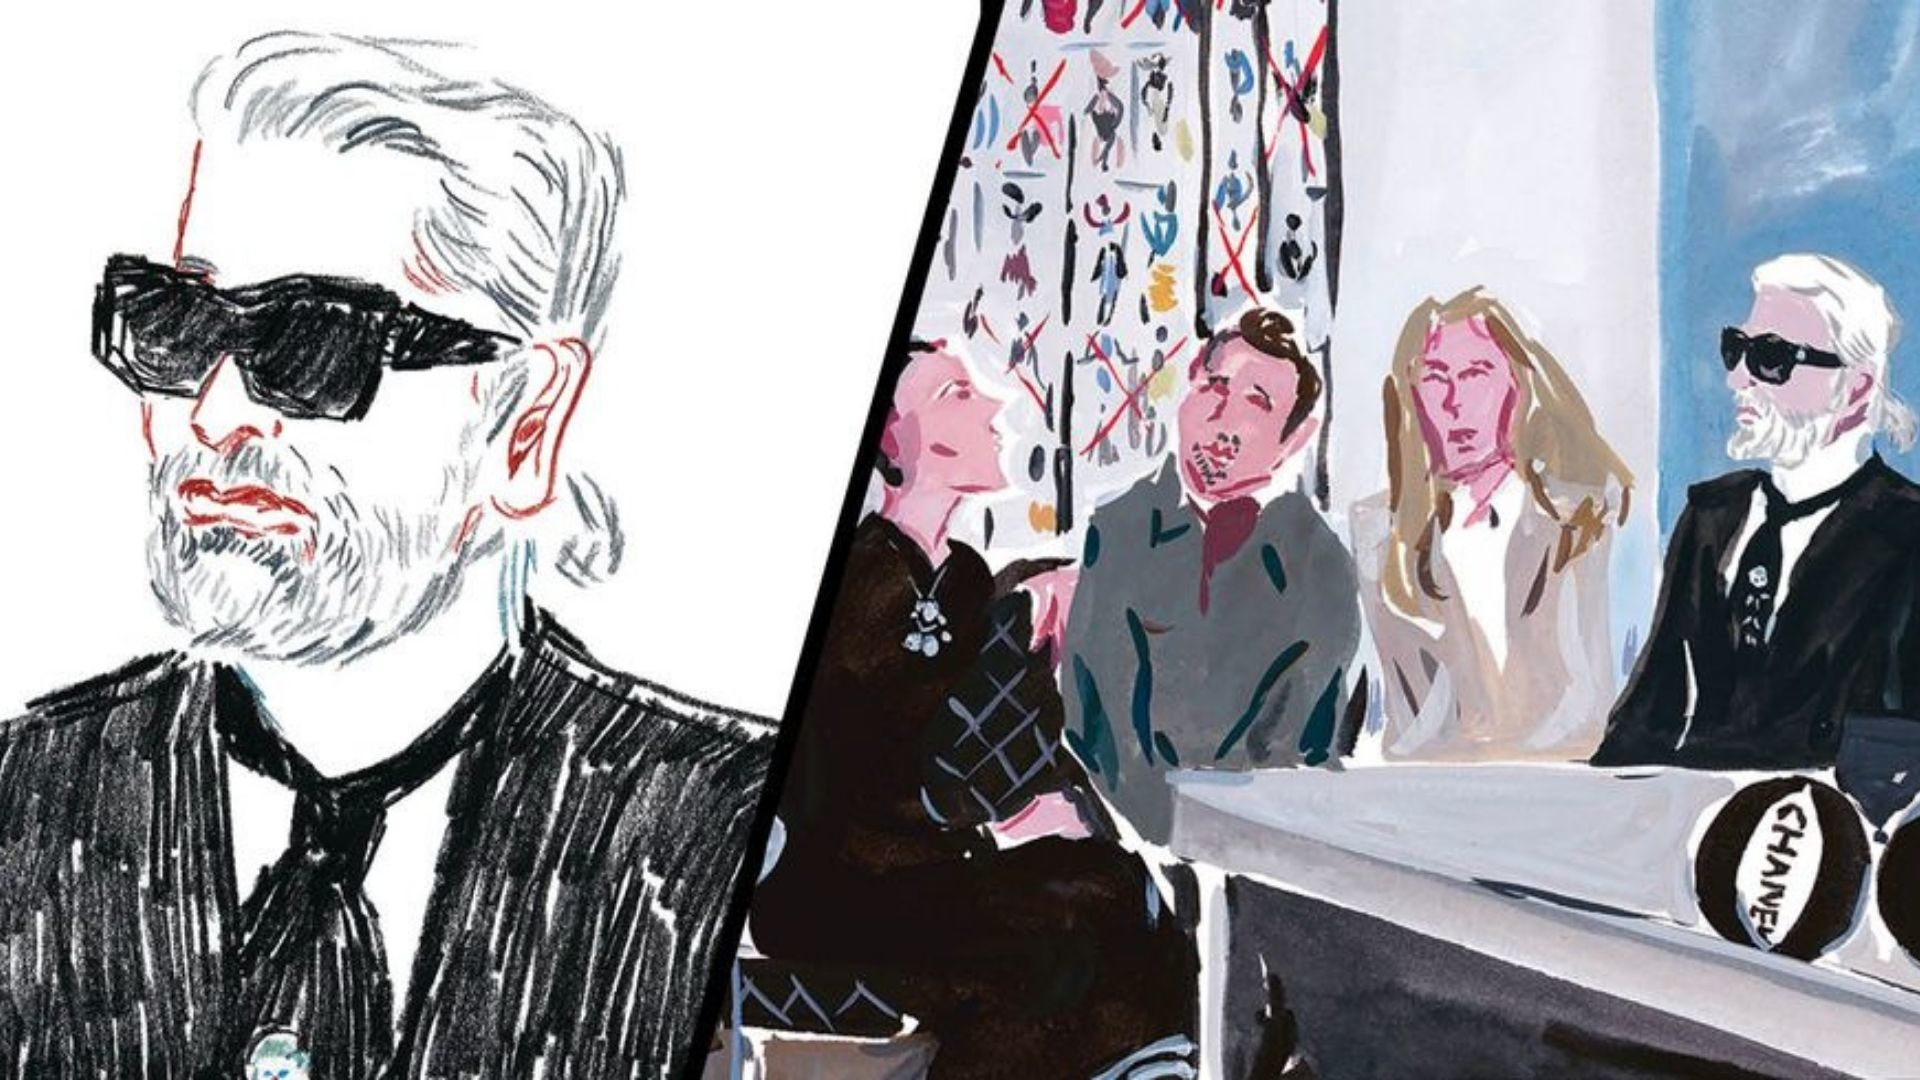 A New Illustrated Chanel Book Pays Homage To The Late Karl Lagerfeld